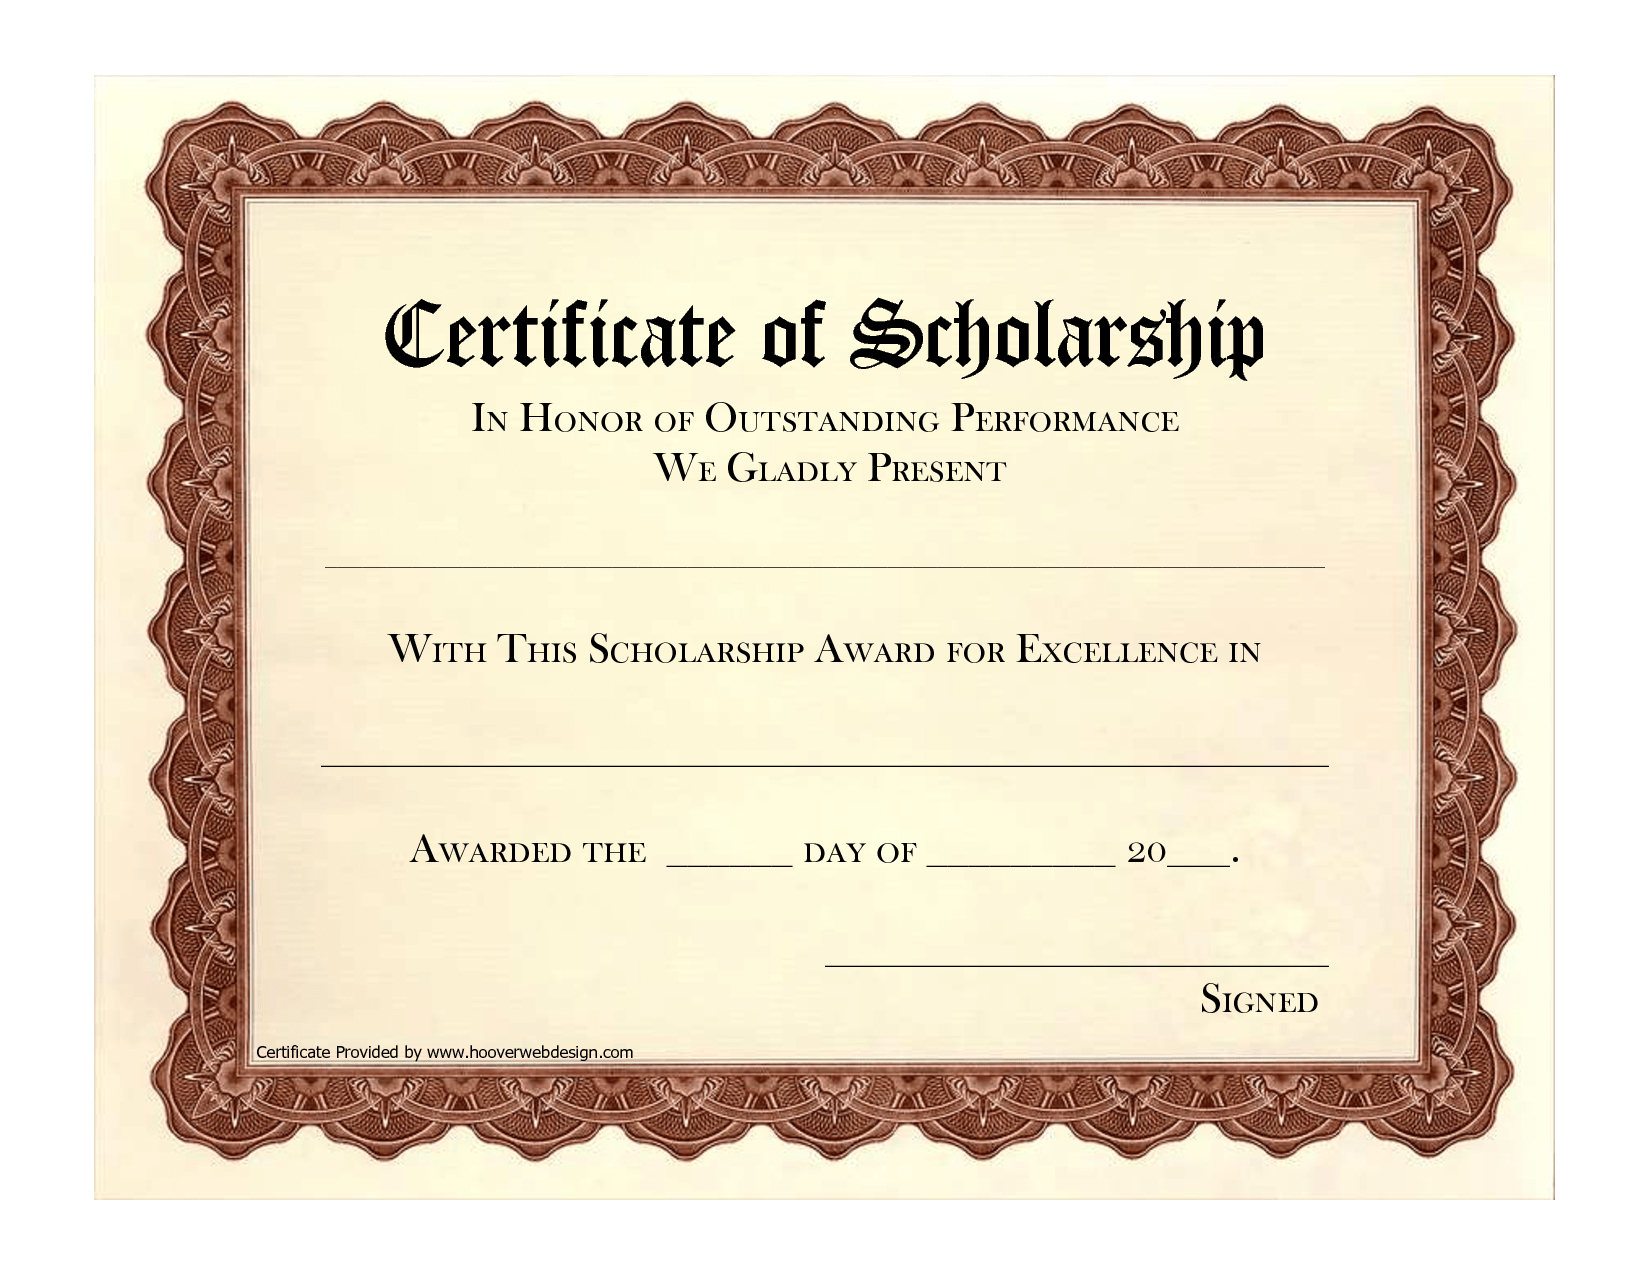 Scholarship Certificate Template For Sample Of Awards Ways To With Regard To Scholarship Certificate Template